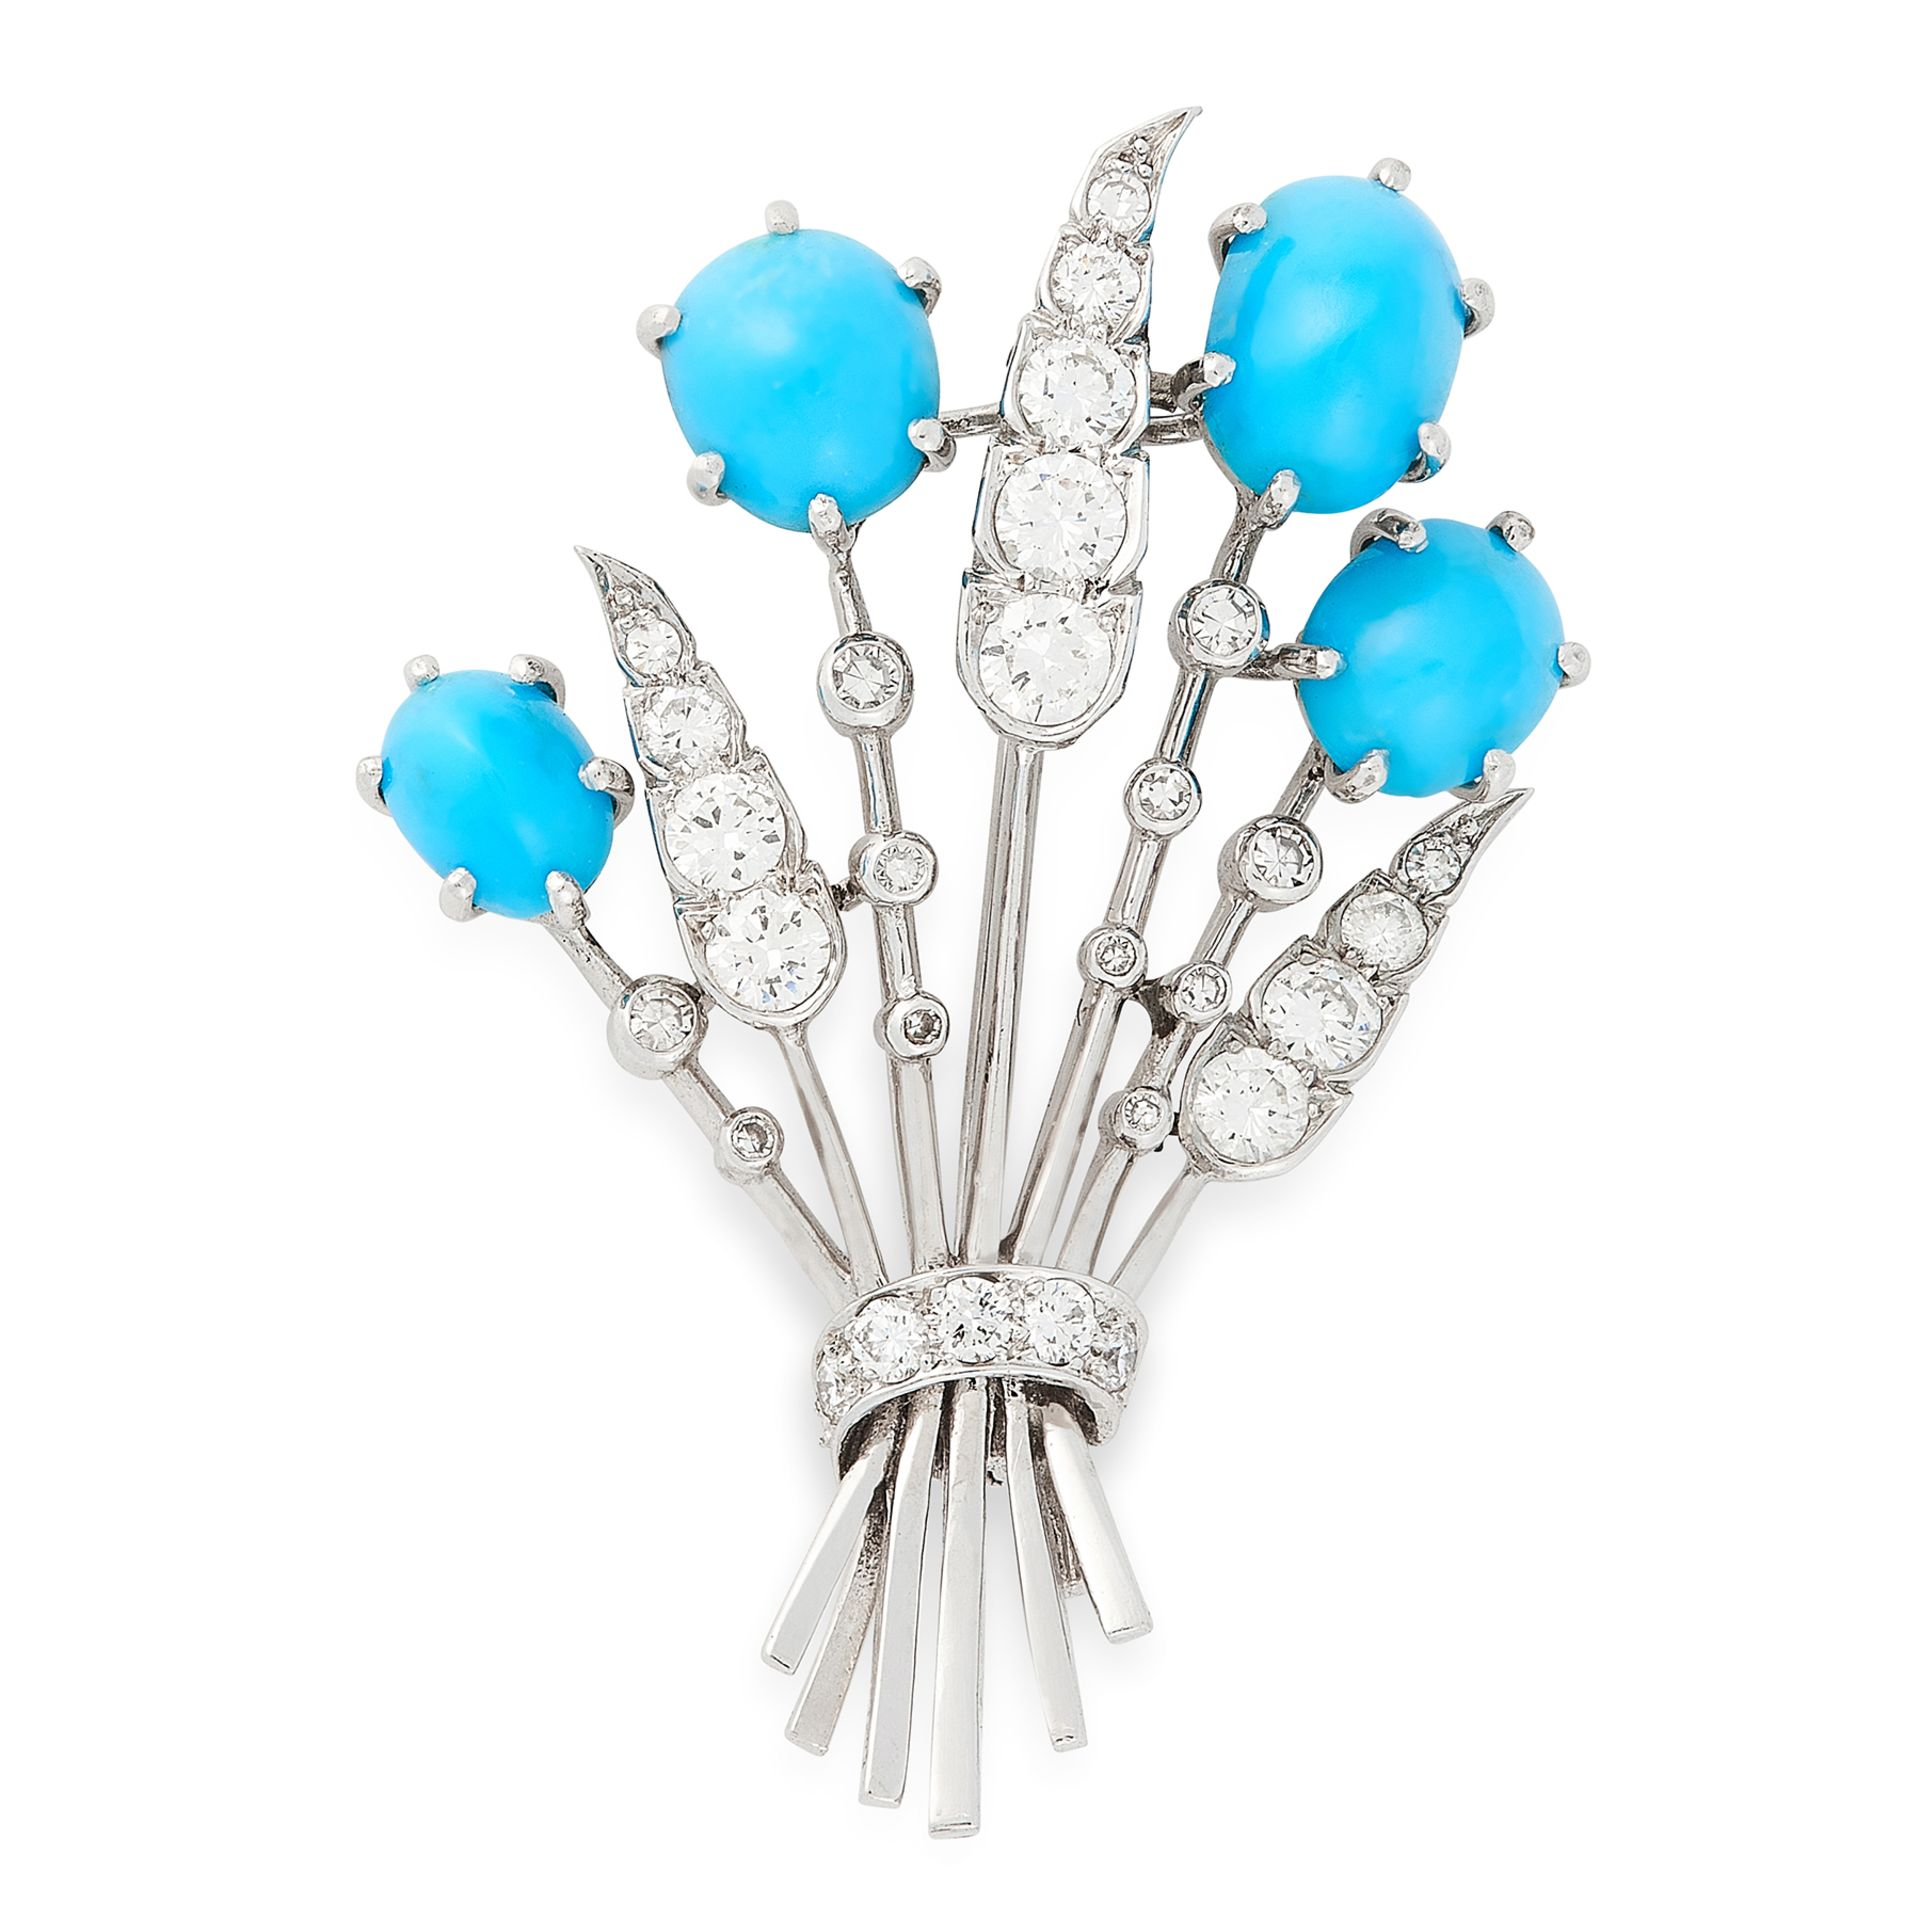 Los 43 - A VINTAGE TURQUOISE AND DIAMOND BROOCH, CARTIER in 18ct white gold, designed as a floral spray,